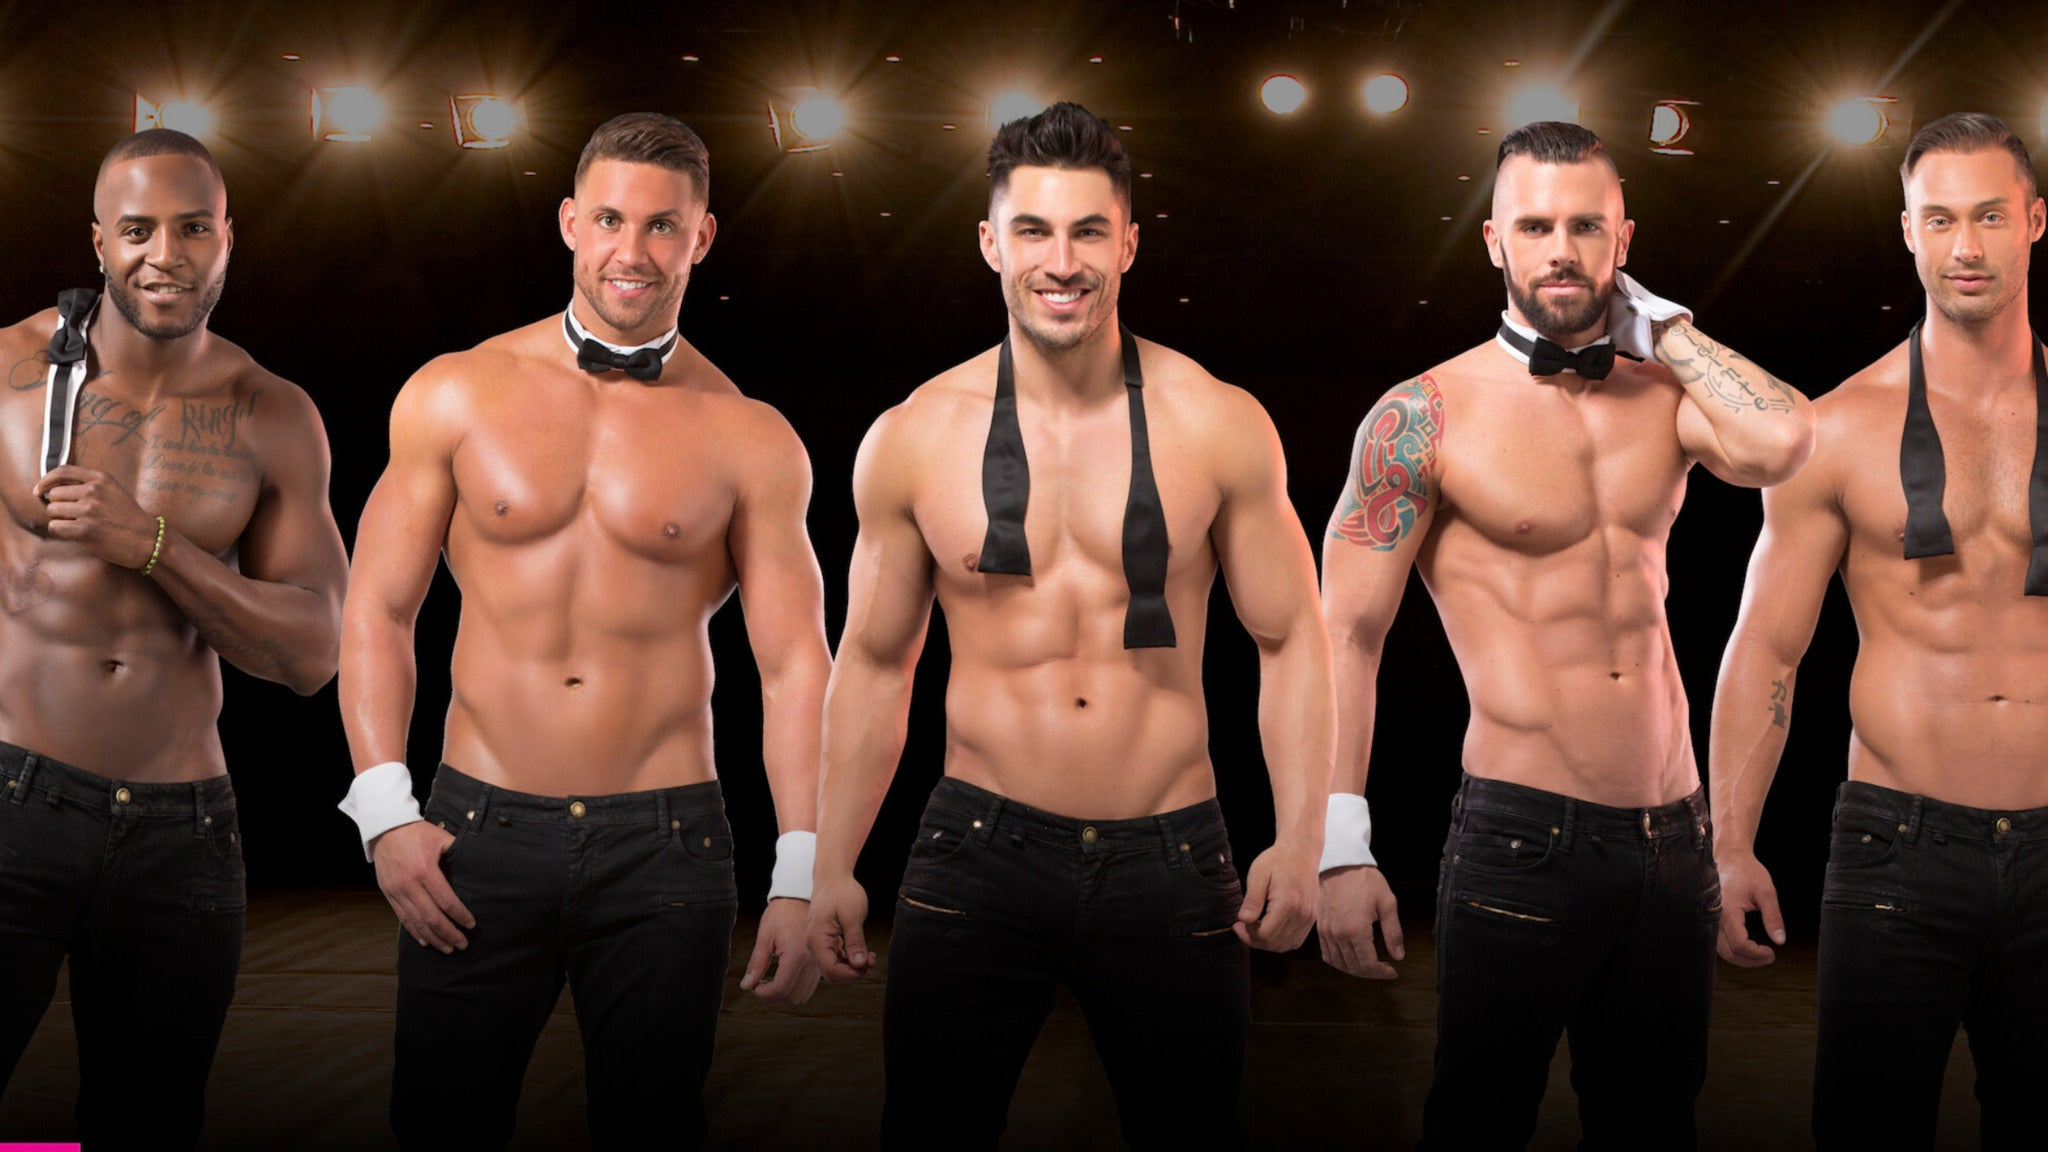 Chippendales 2020 Get Naughty Tour at The Wellmont Theater